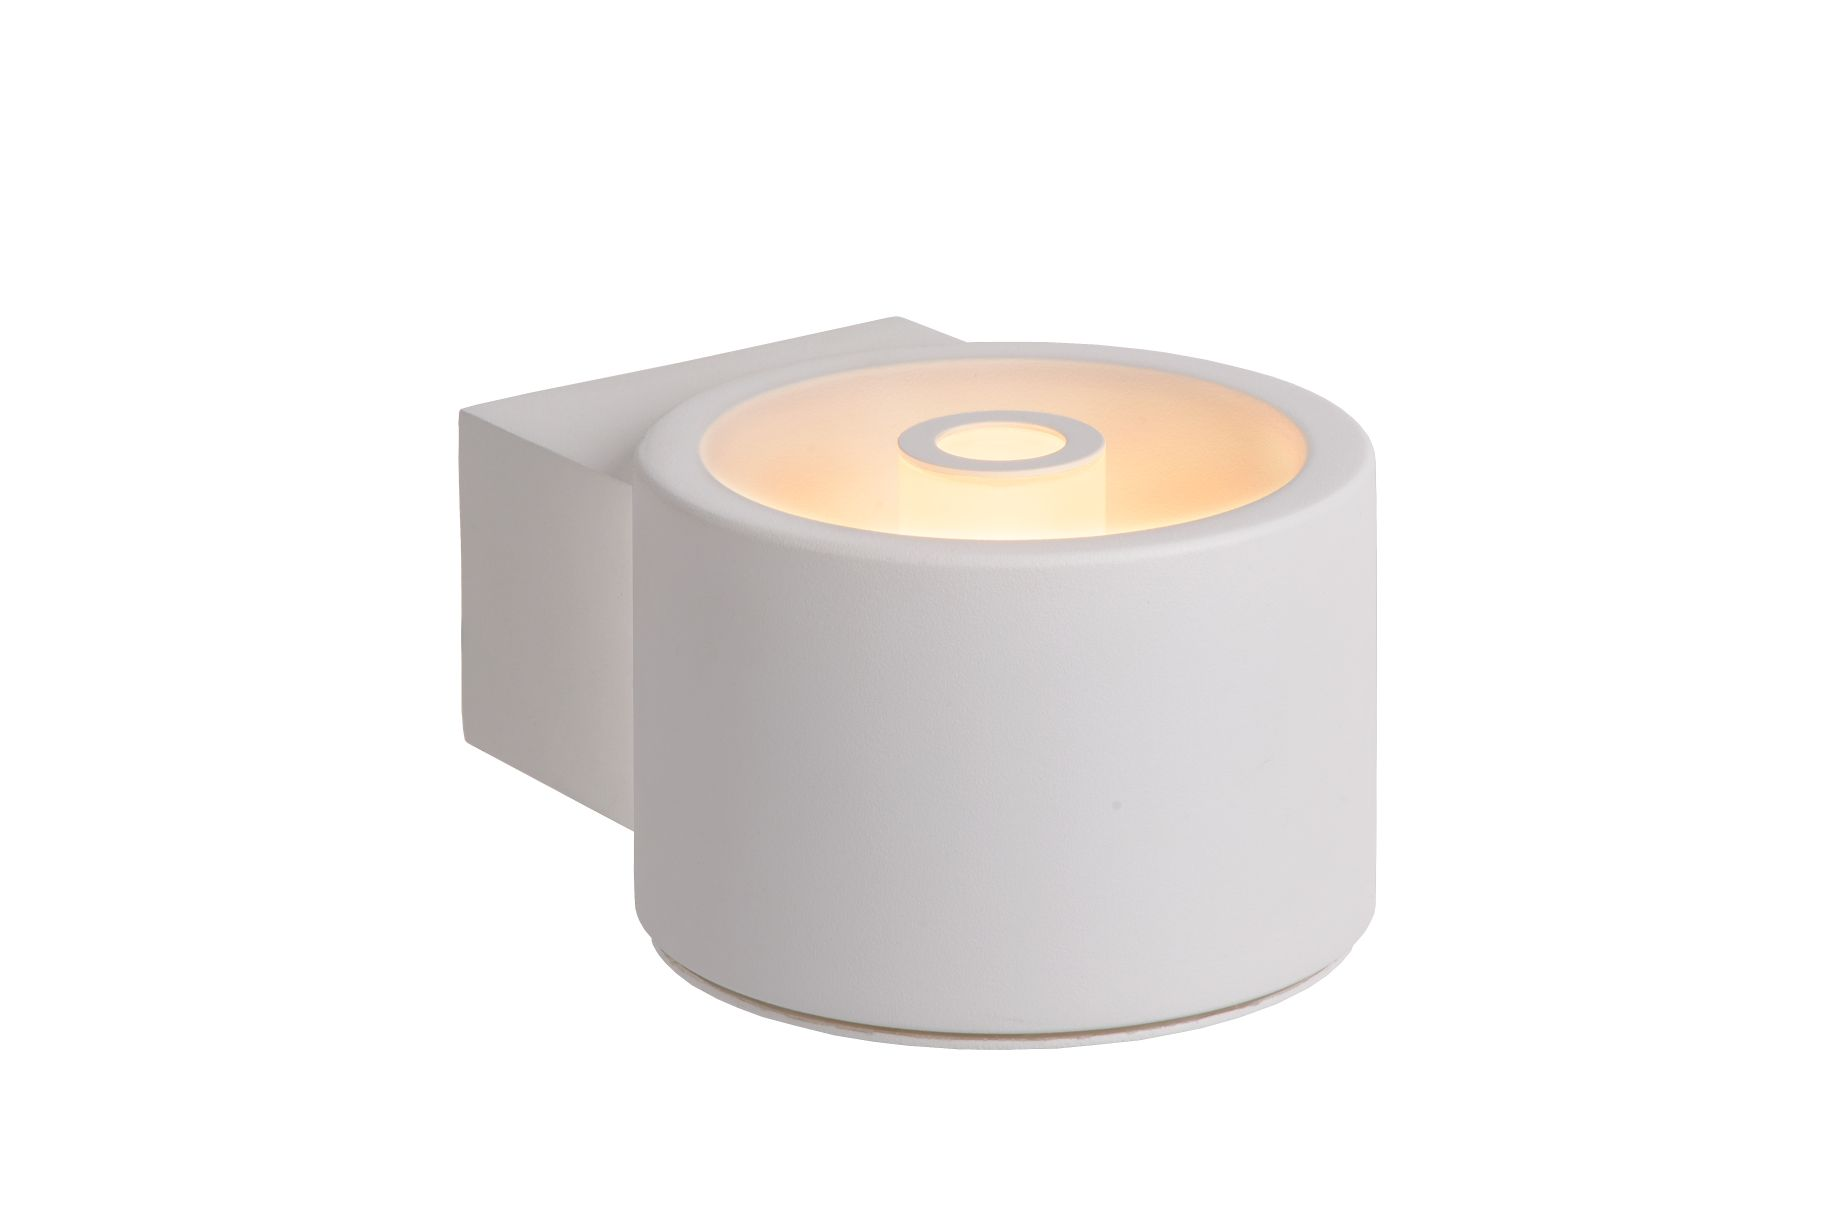 VITA Wall Light G9/3W excl. IP44 D12 W15 (33257/01/31)